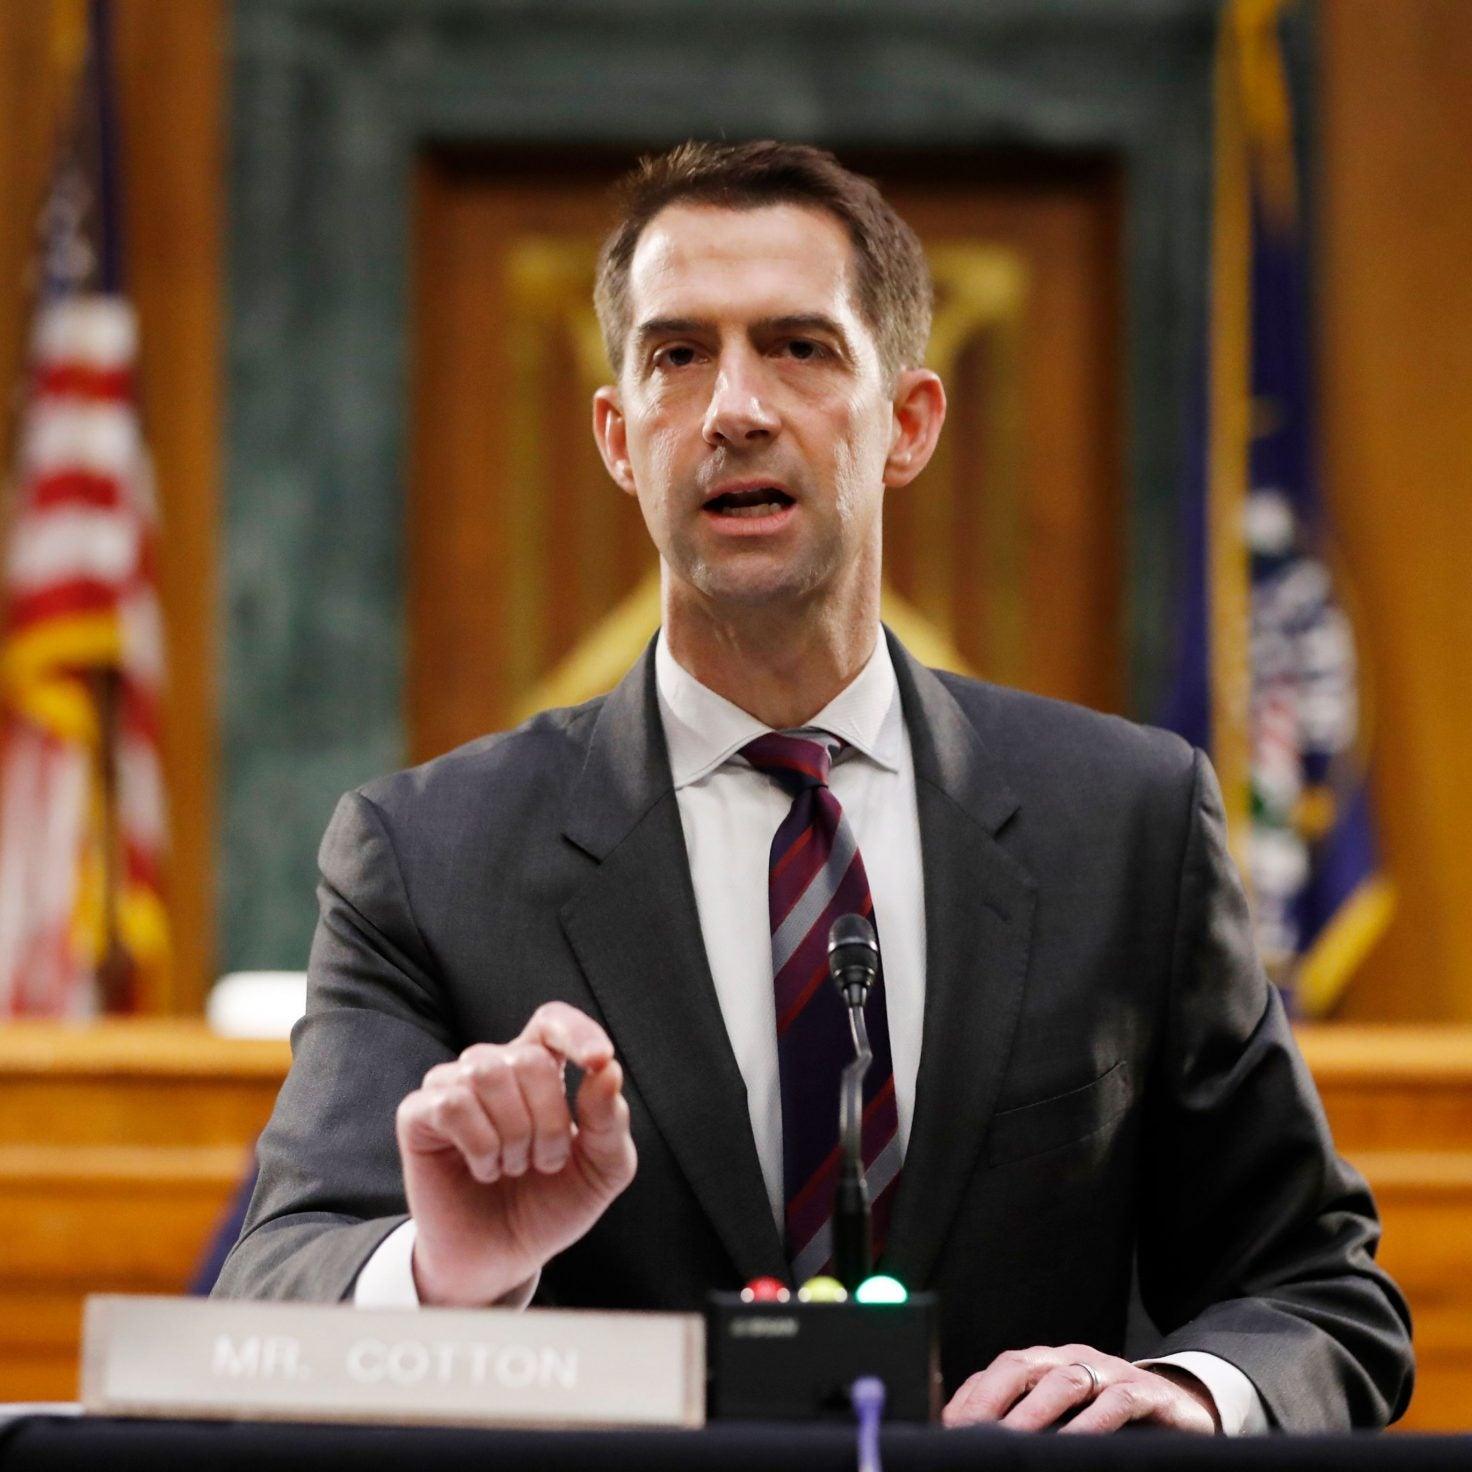 Twitter Ripped Into Republican Sen. Tom Cotton For Saying Slavery Was A 'Necessary Evil'